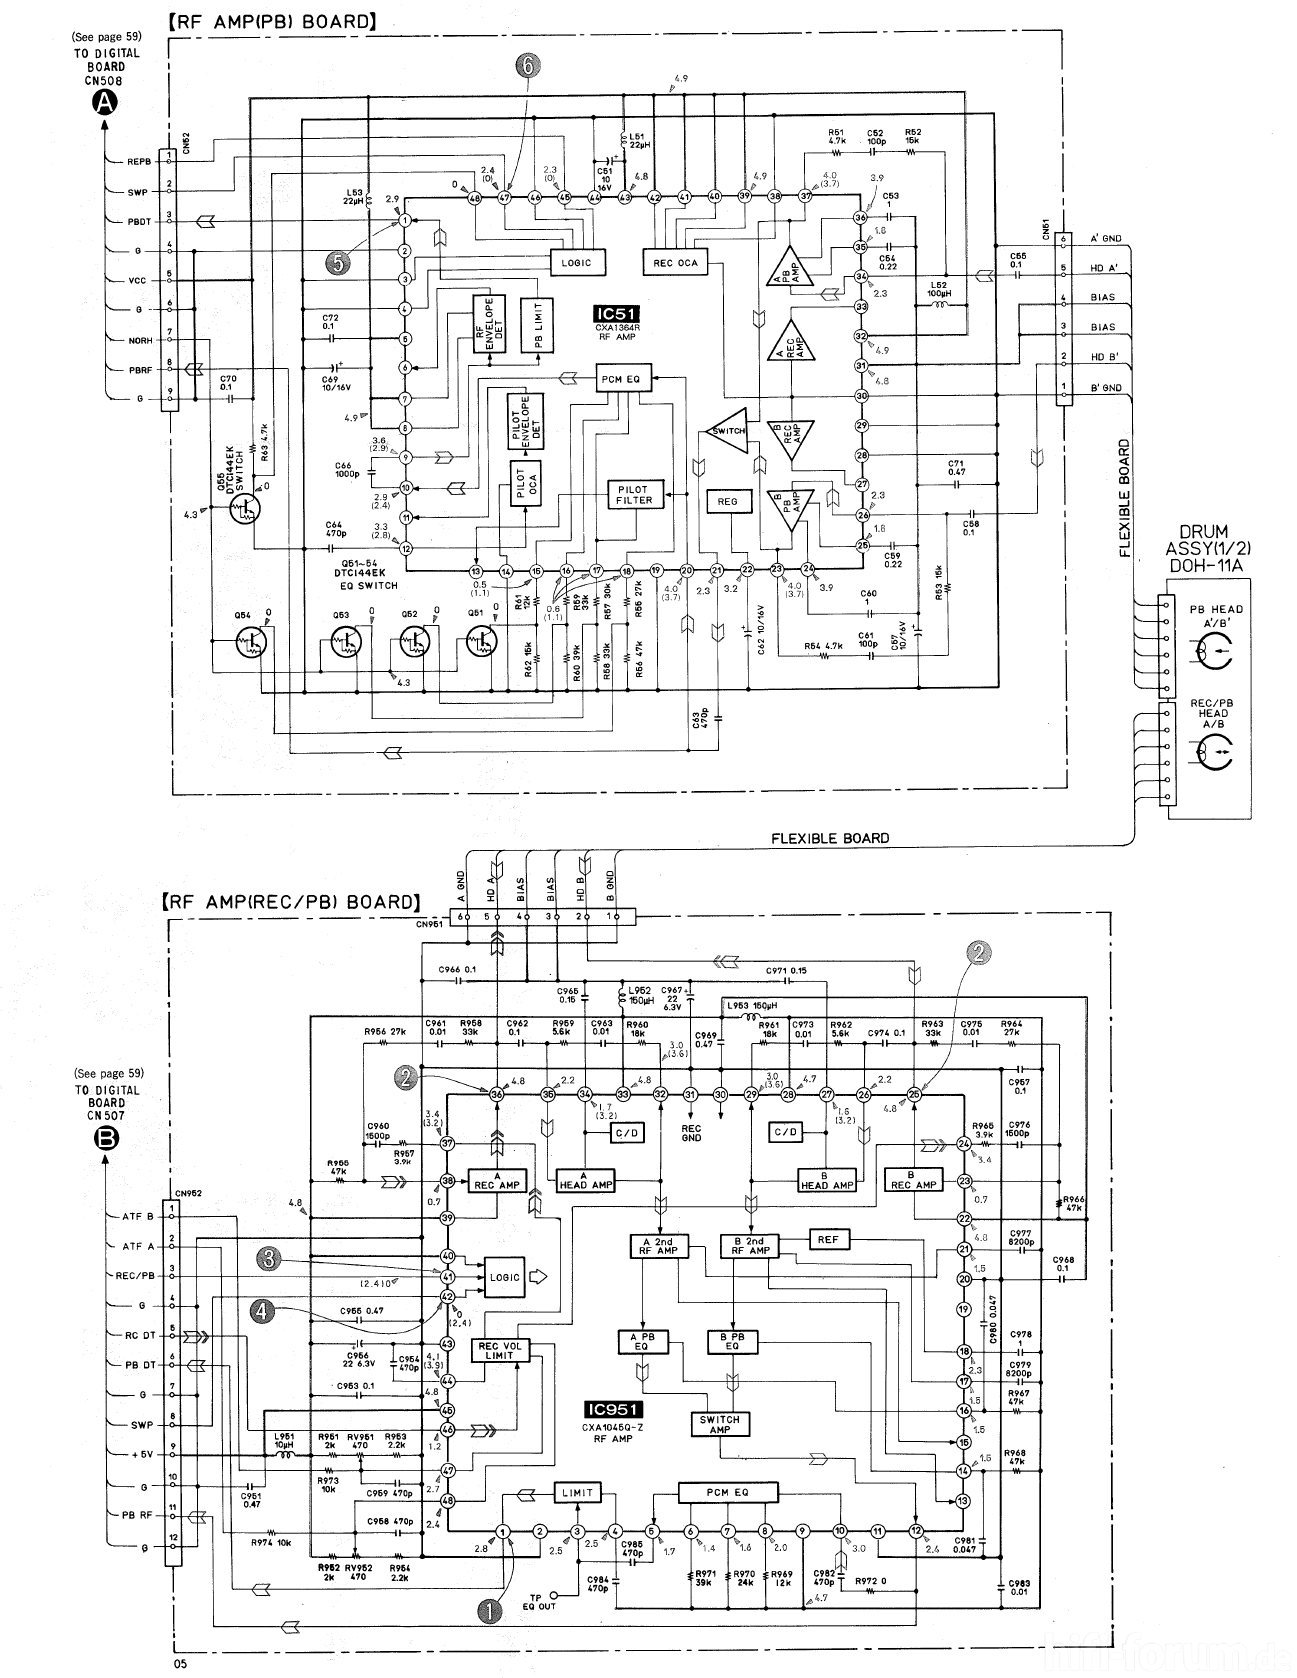 sony pcm 2700a schematic detail head amps